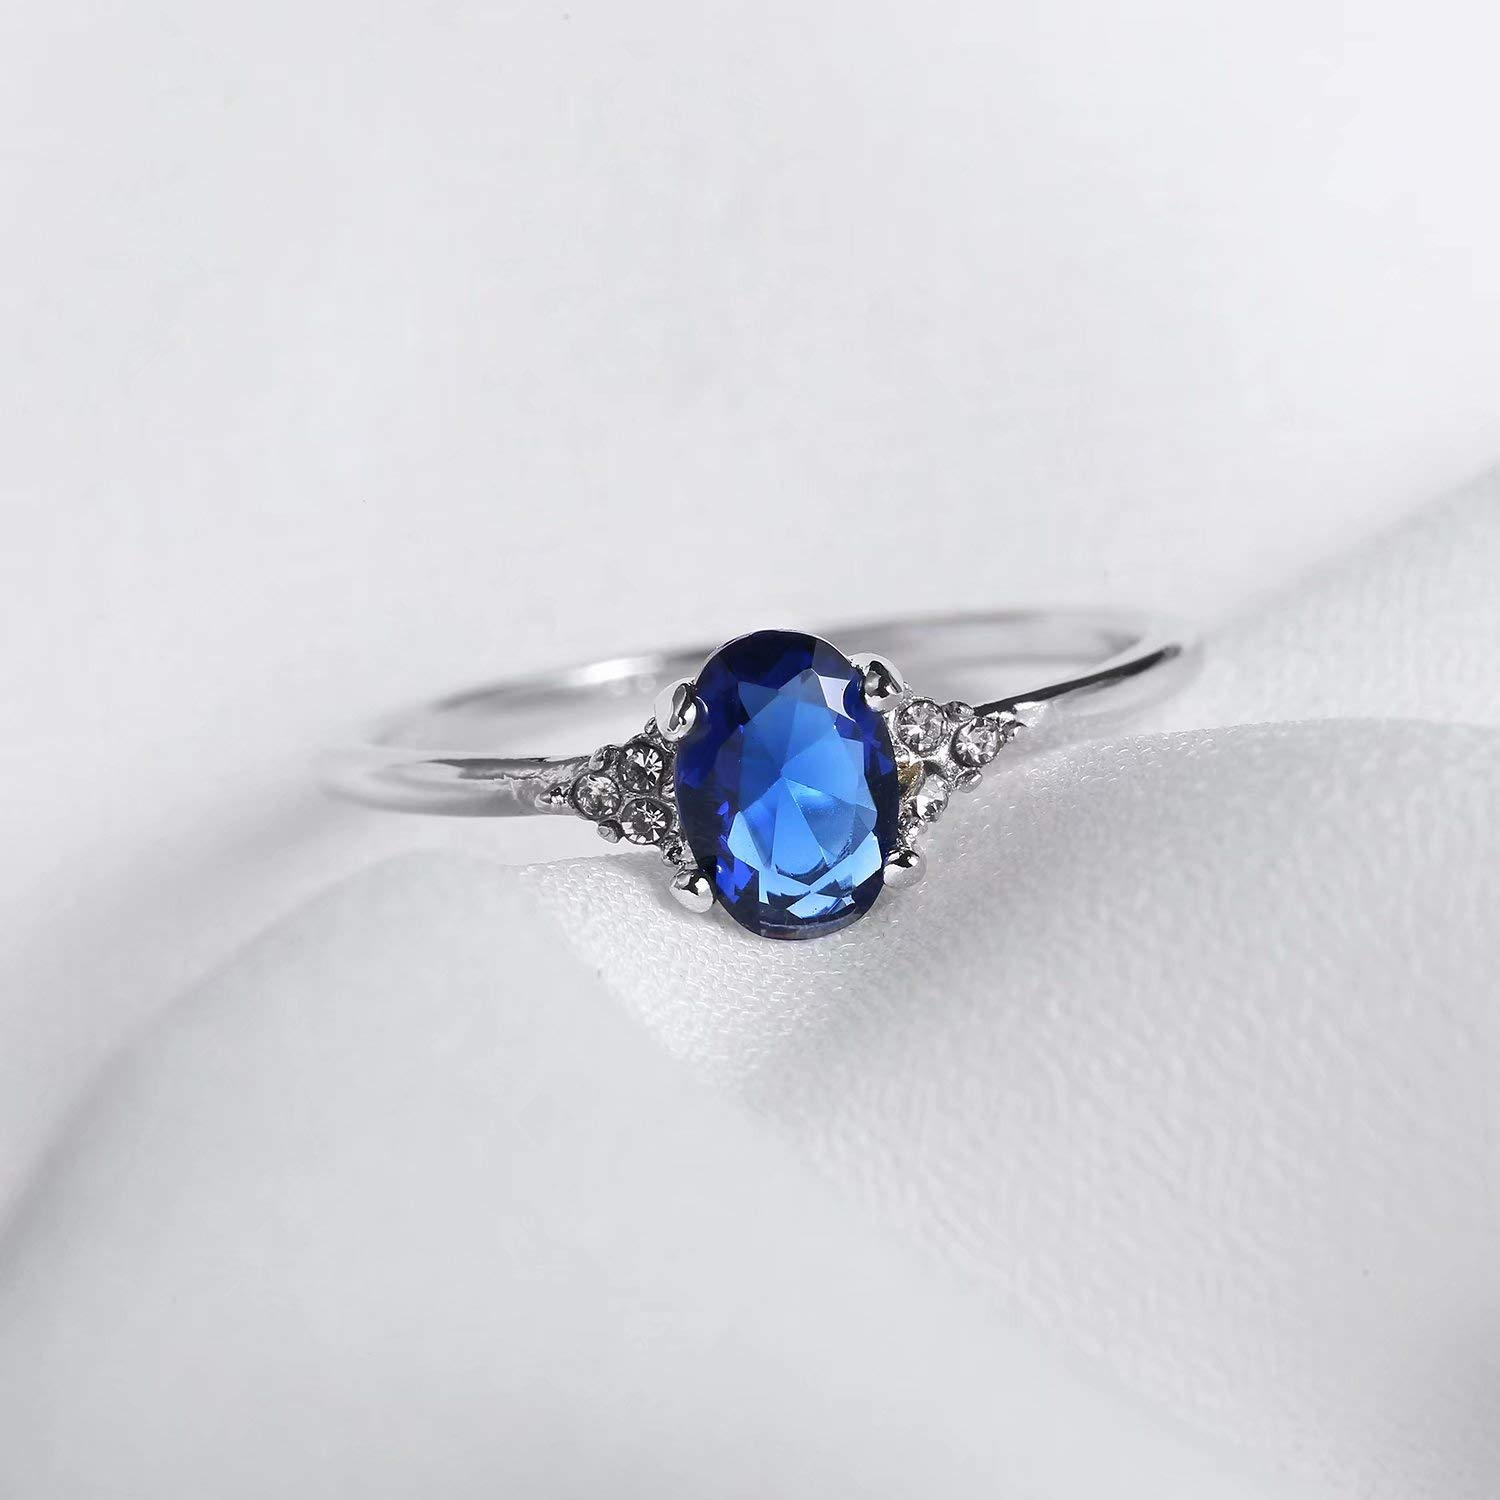 SR Sterling Silver Oval 0.9ct Created Sapphire Solitaire Style Engagement Ring Sizes 5-9